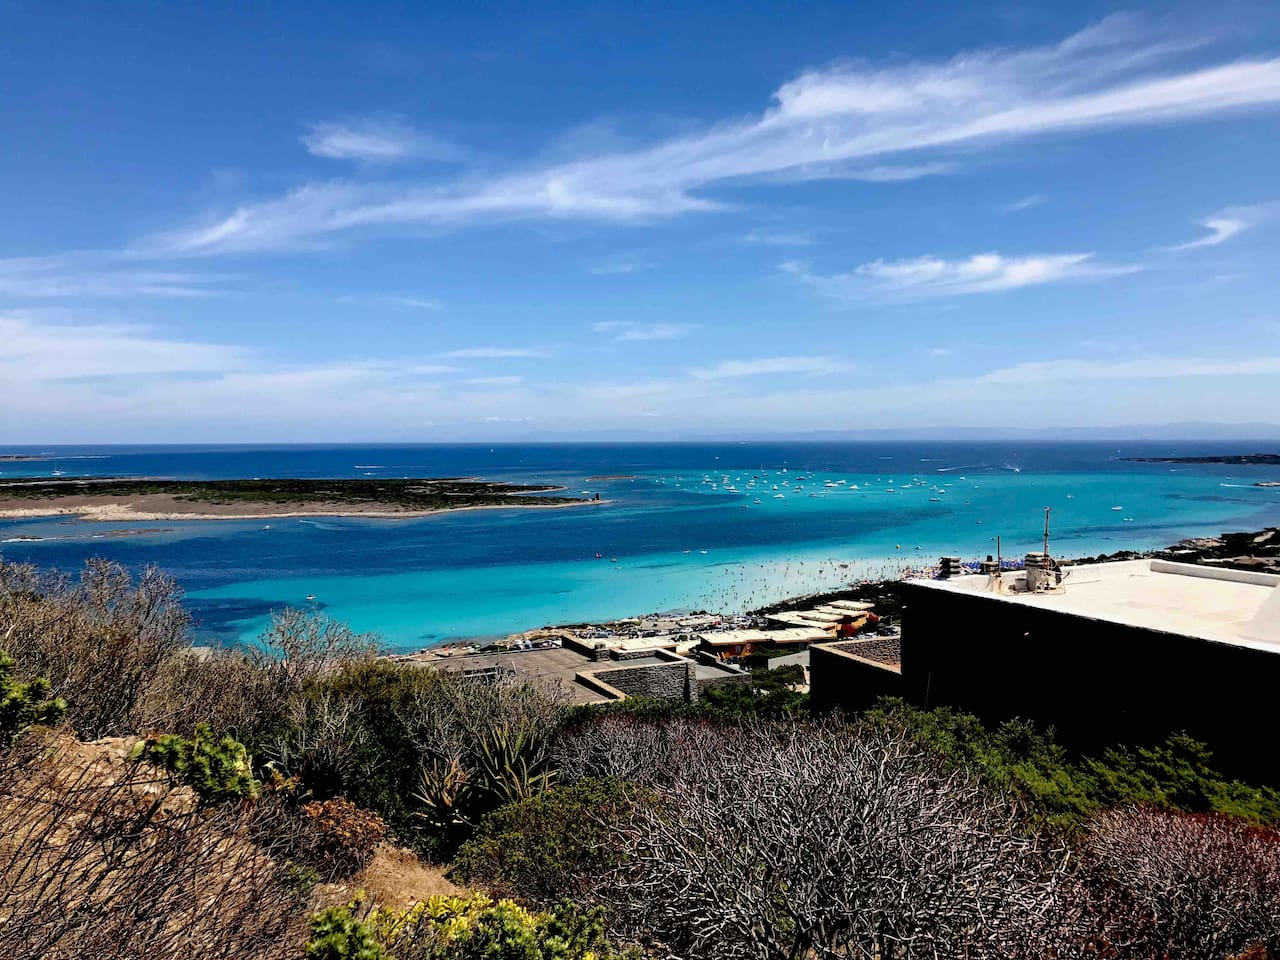 The view from the house towards 'La Pelosa' beach